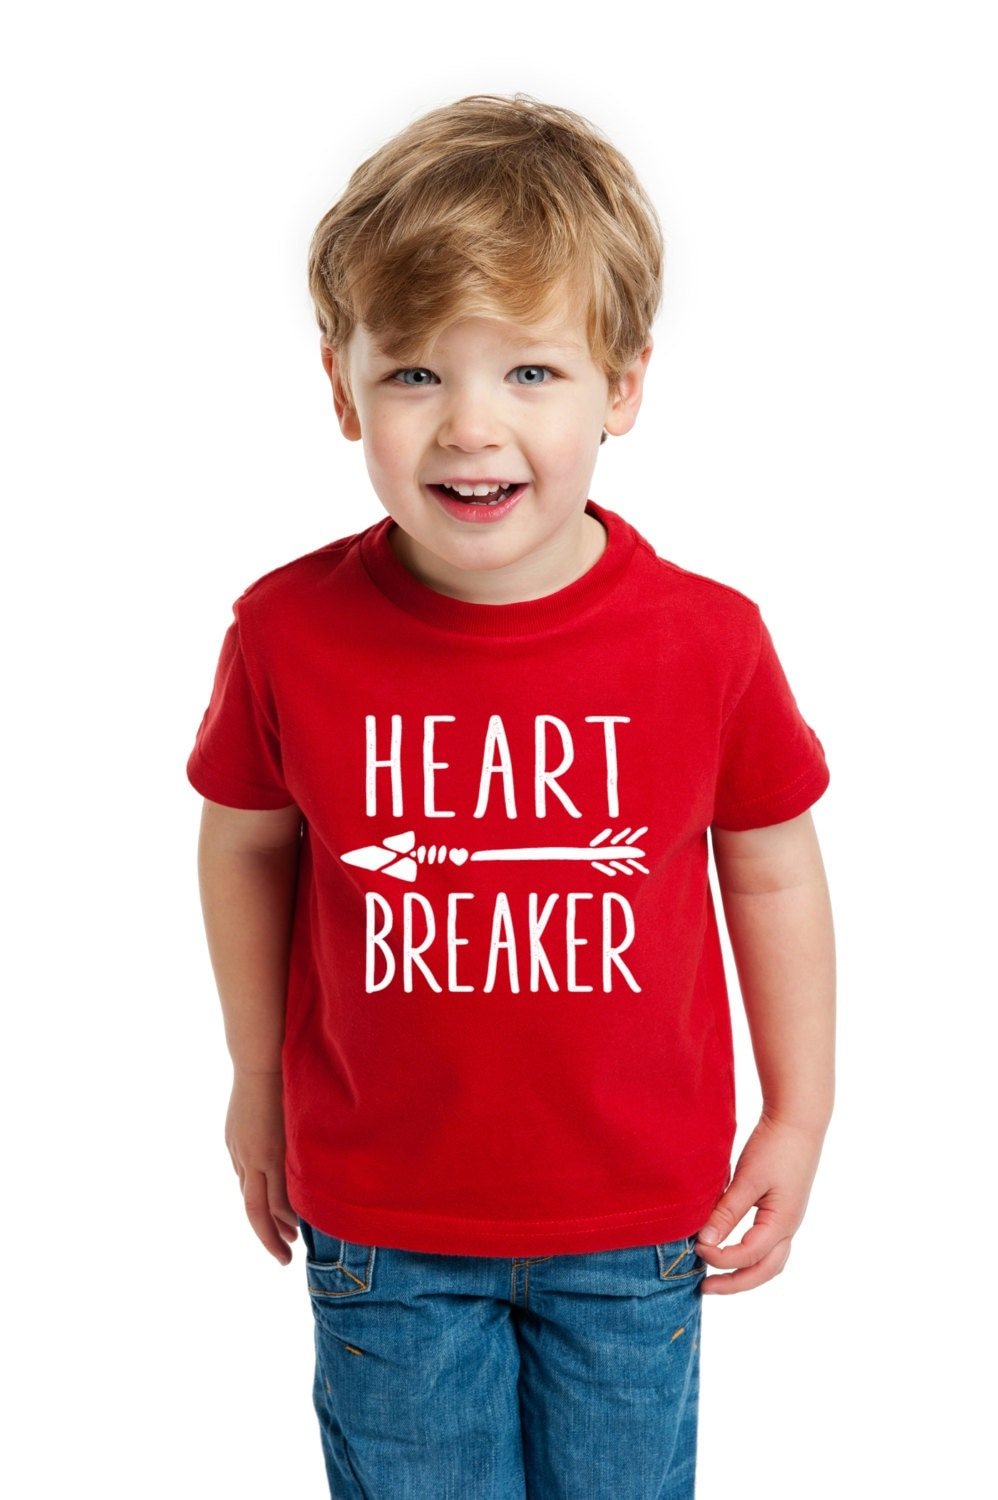 Valentine's Day Shirt for Kids or Toddlers Heart Breaker